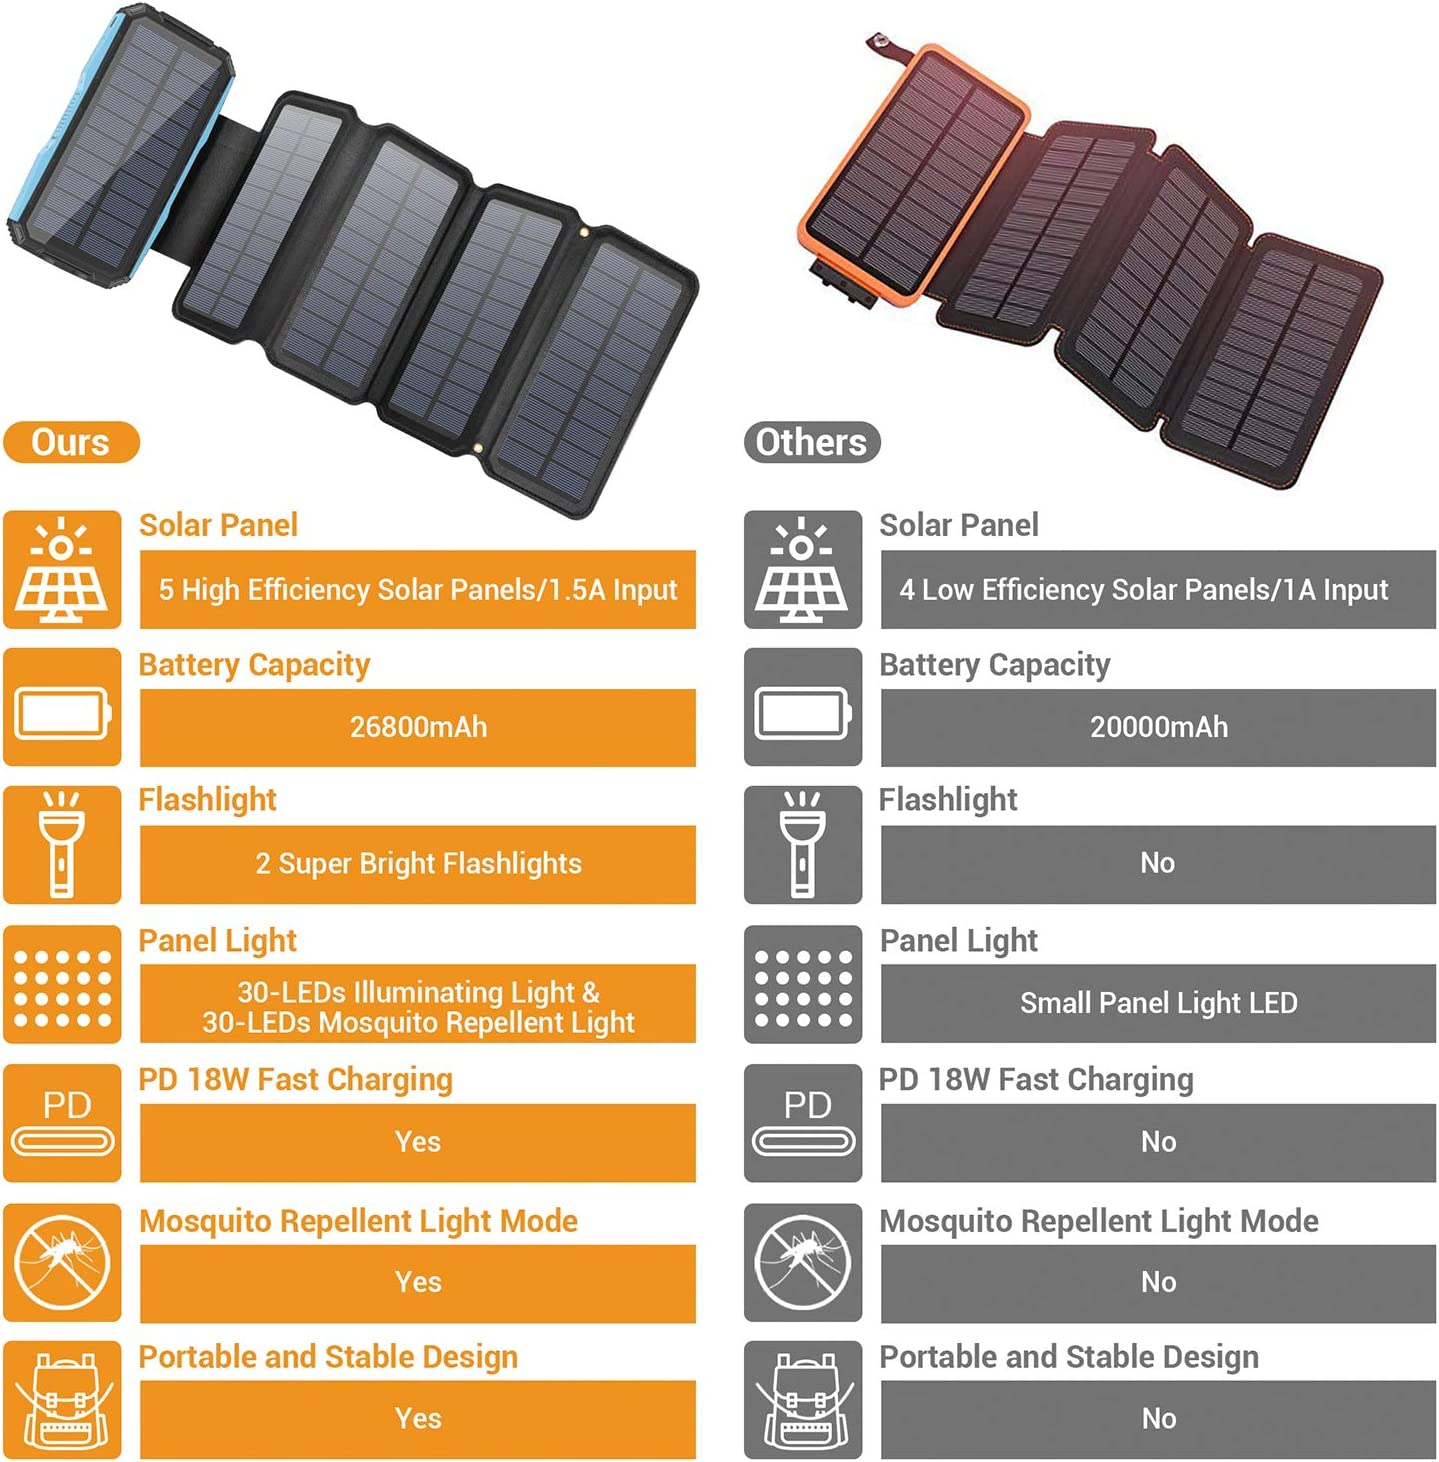 Portable 5 Solar Panel 7.5W High Efficiency Power Bank with Ultra Bright 60-LED Panel Light and Flashlights Black Solar Charger 26800mAh PD 18W Fast Charger External Battery Pack